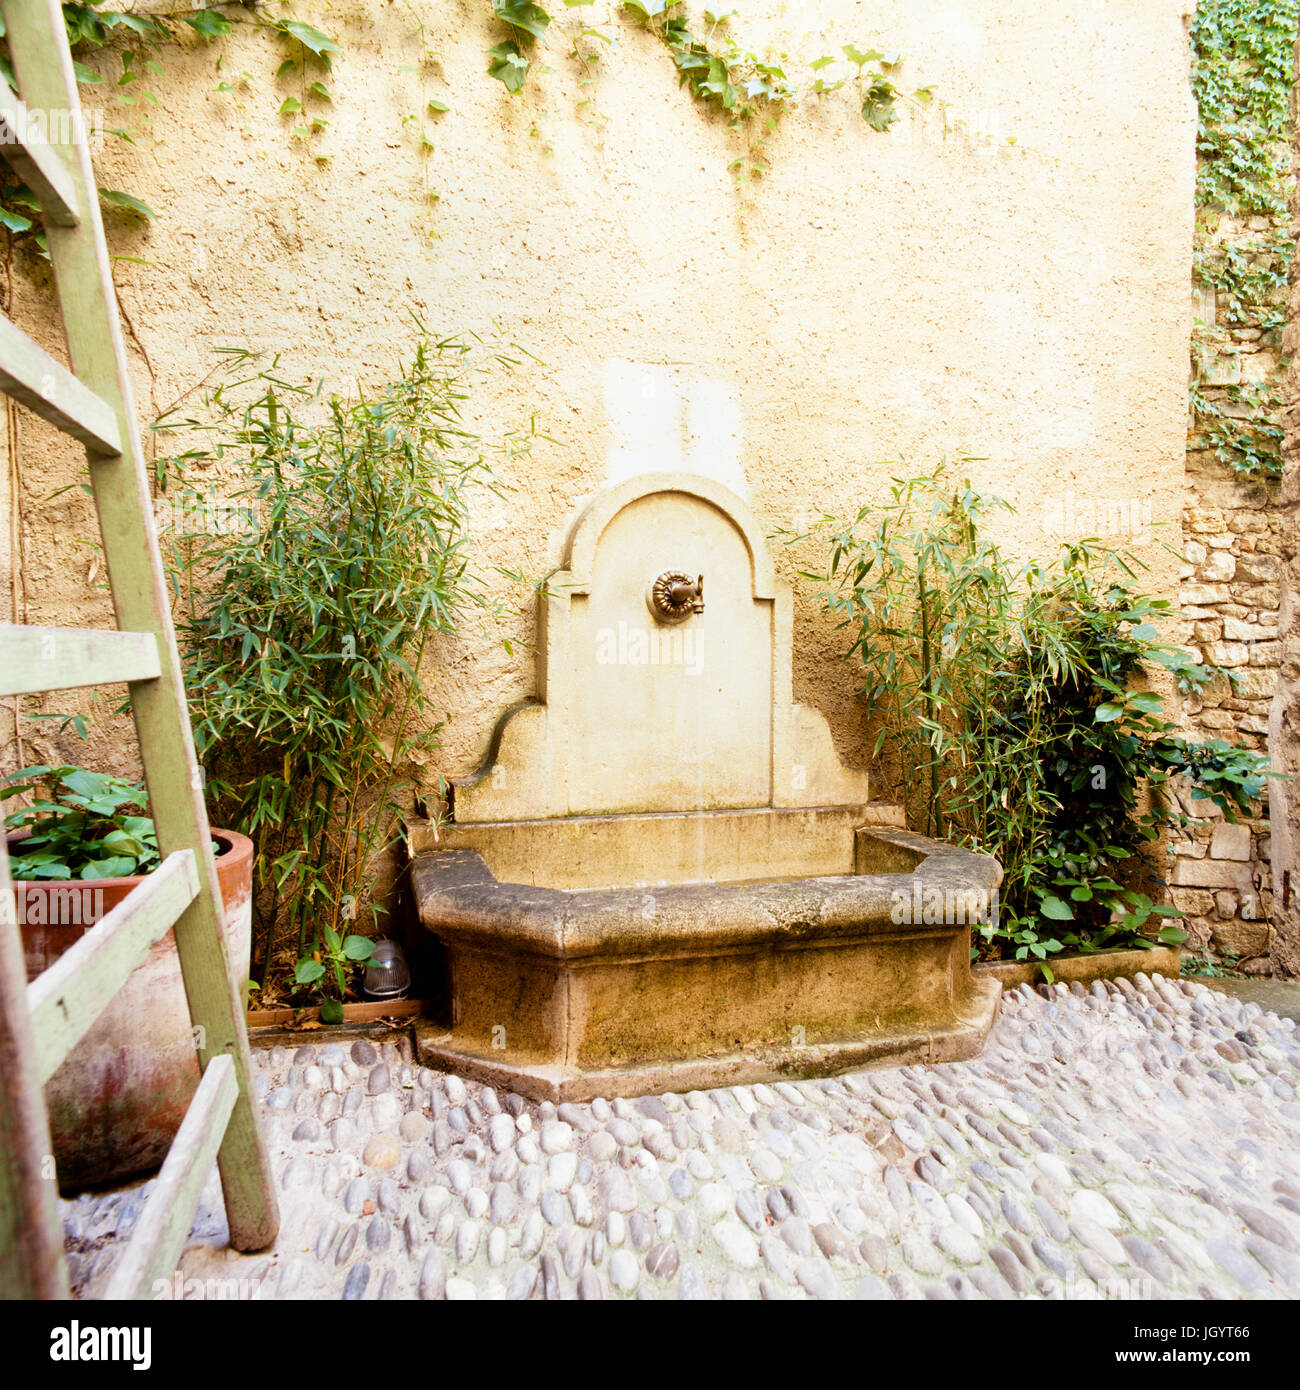 Water fountain on a cobblestone patio - Stock Image